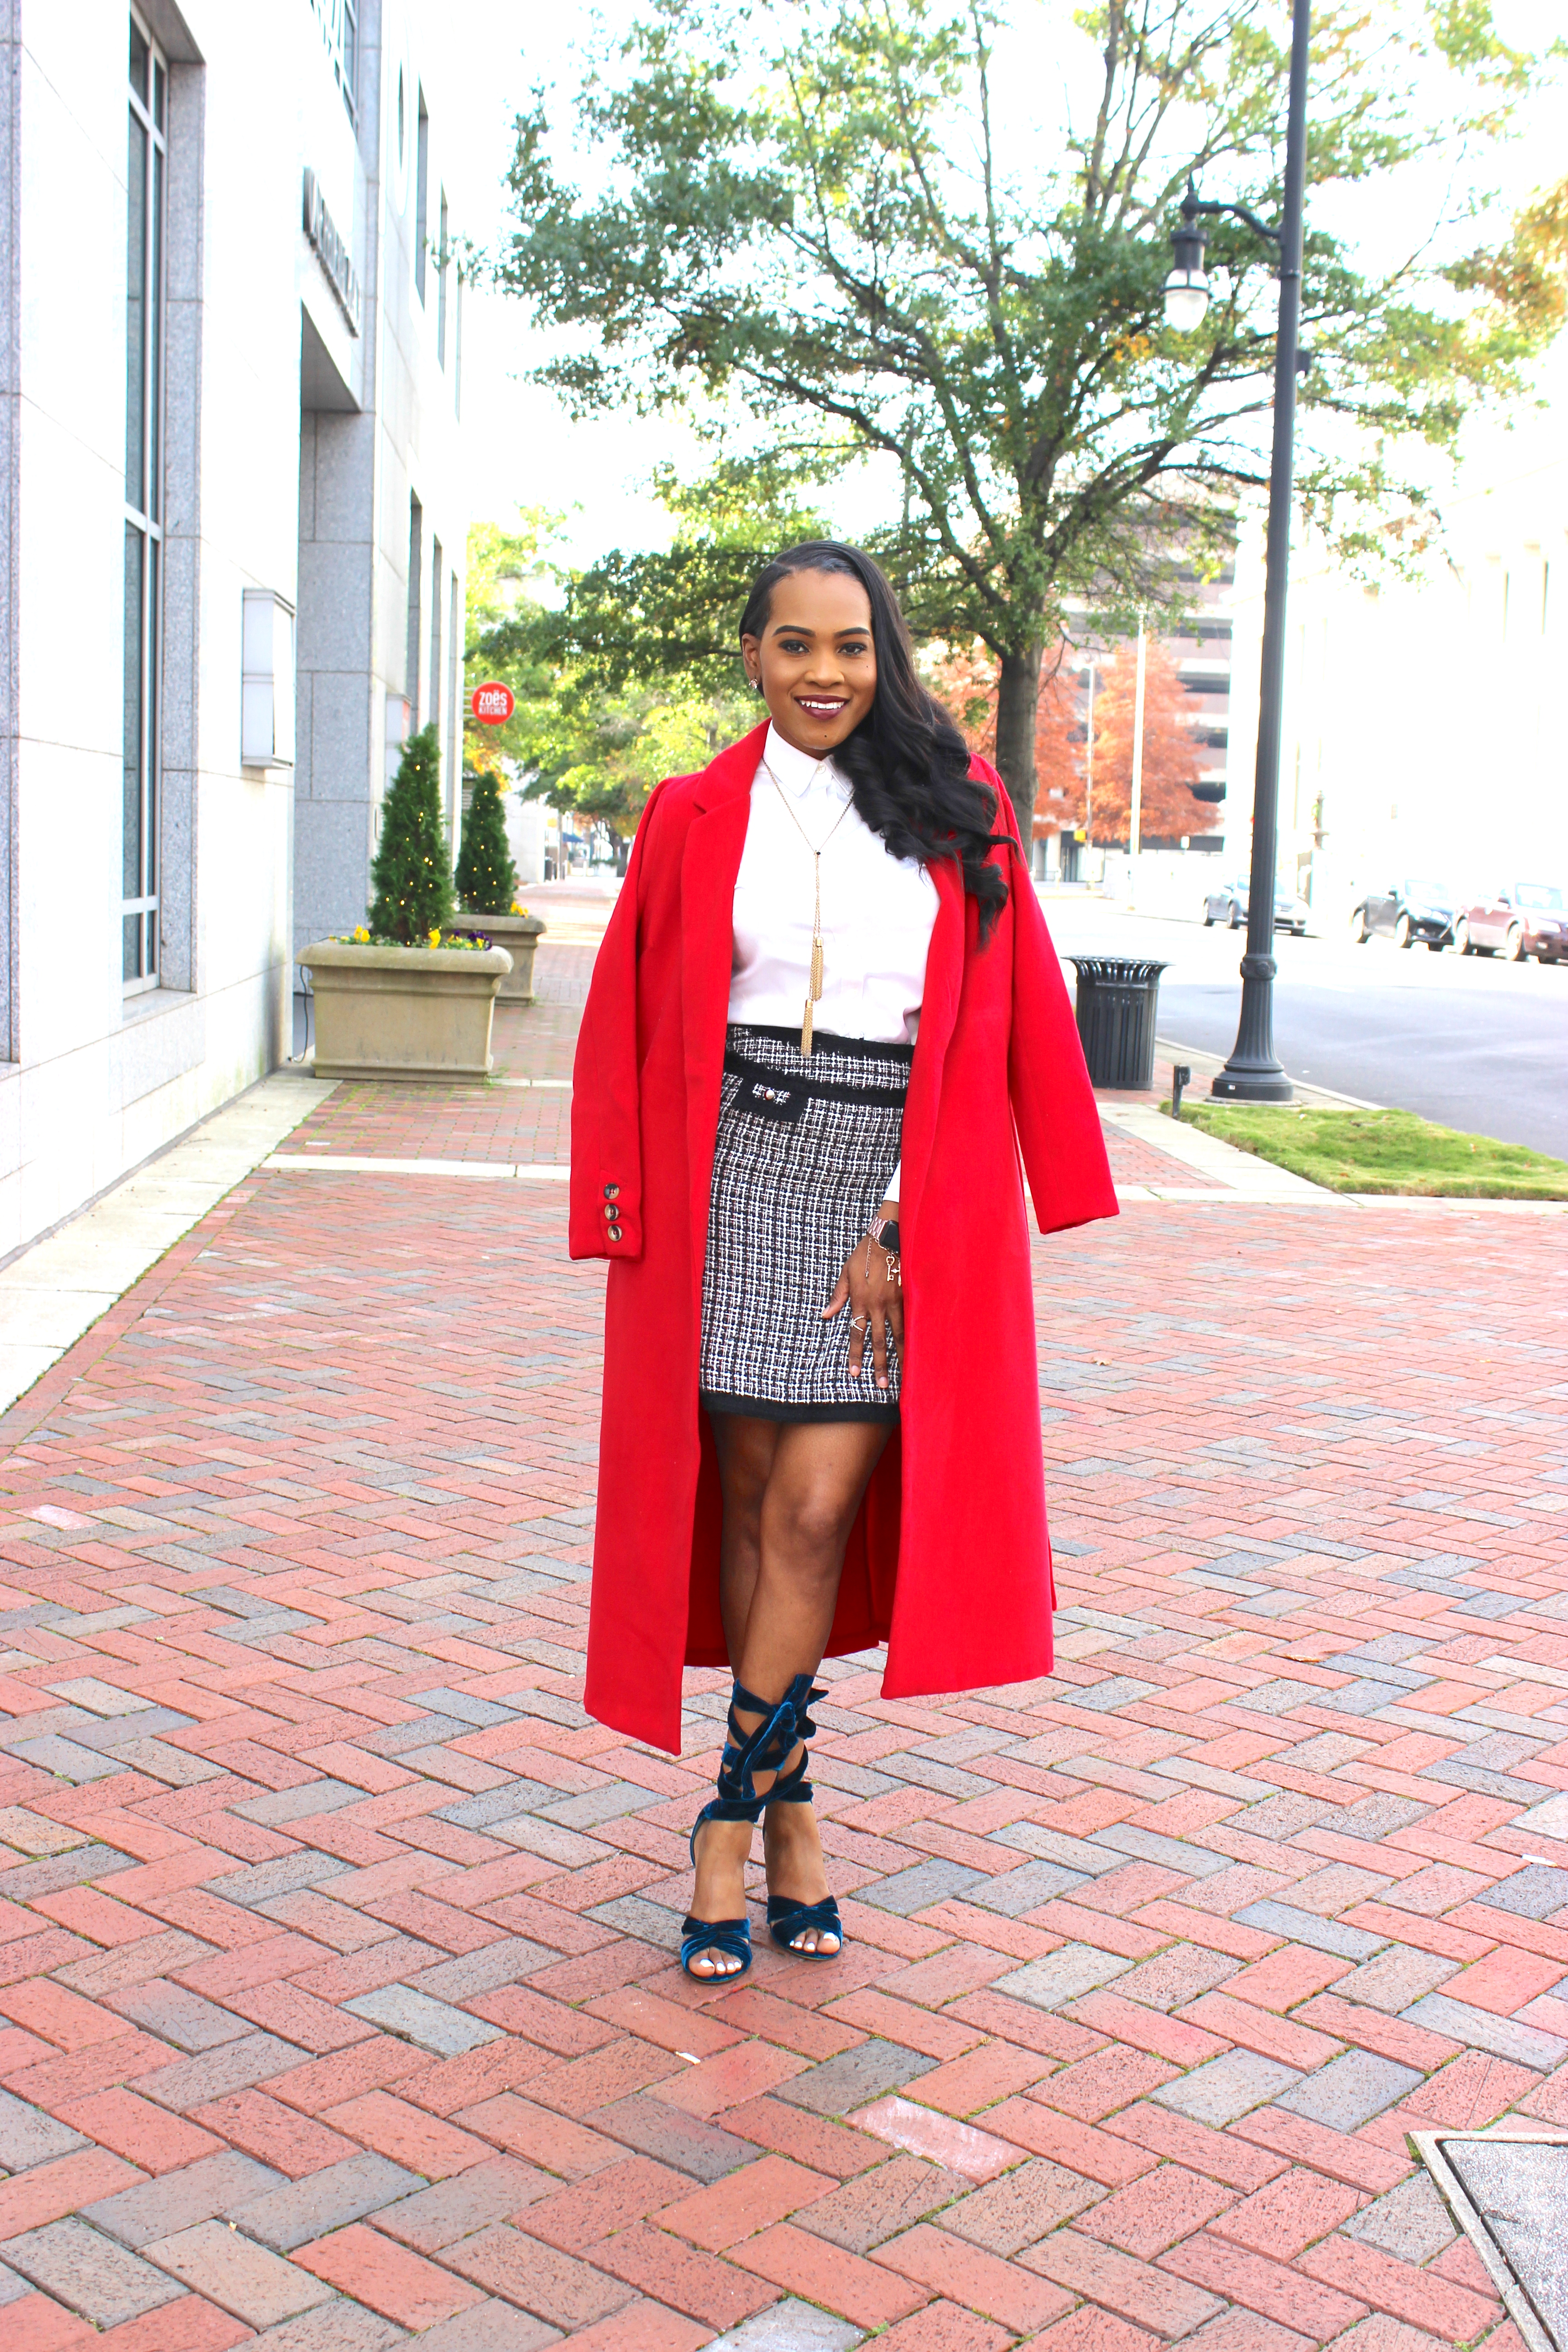 Style-files-thrifted-plaid-white-black-house-market-skirt-white-banna-republic-button-front-blouse-justfab-Scarlet Sage-wrap-coat-justfab-teal-velvet-Acacia Heeled Sandals-oohlalablog-8